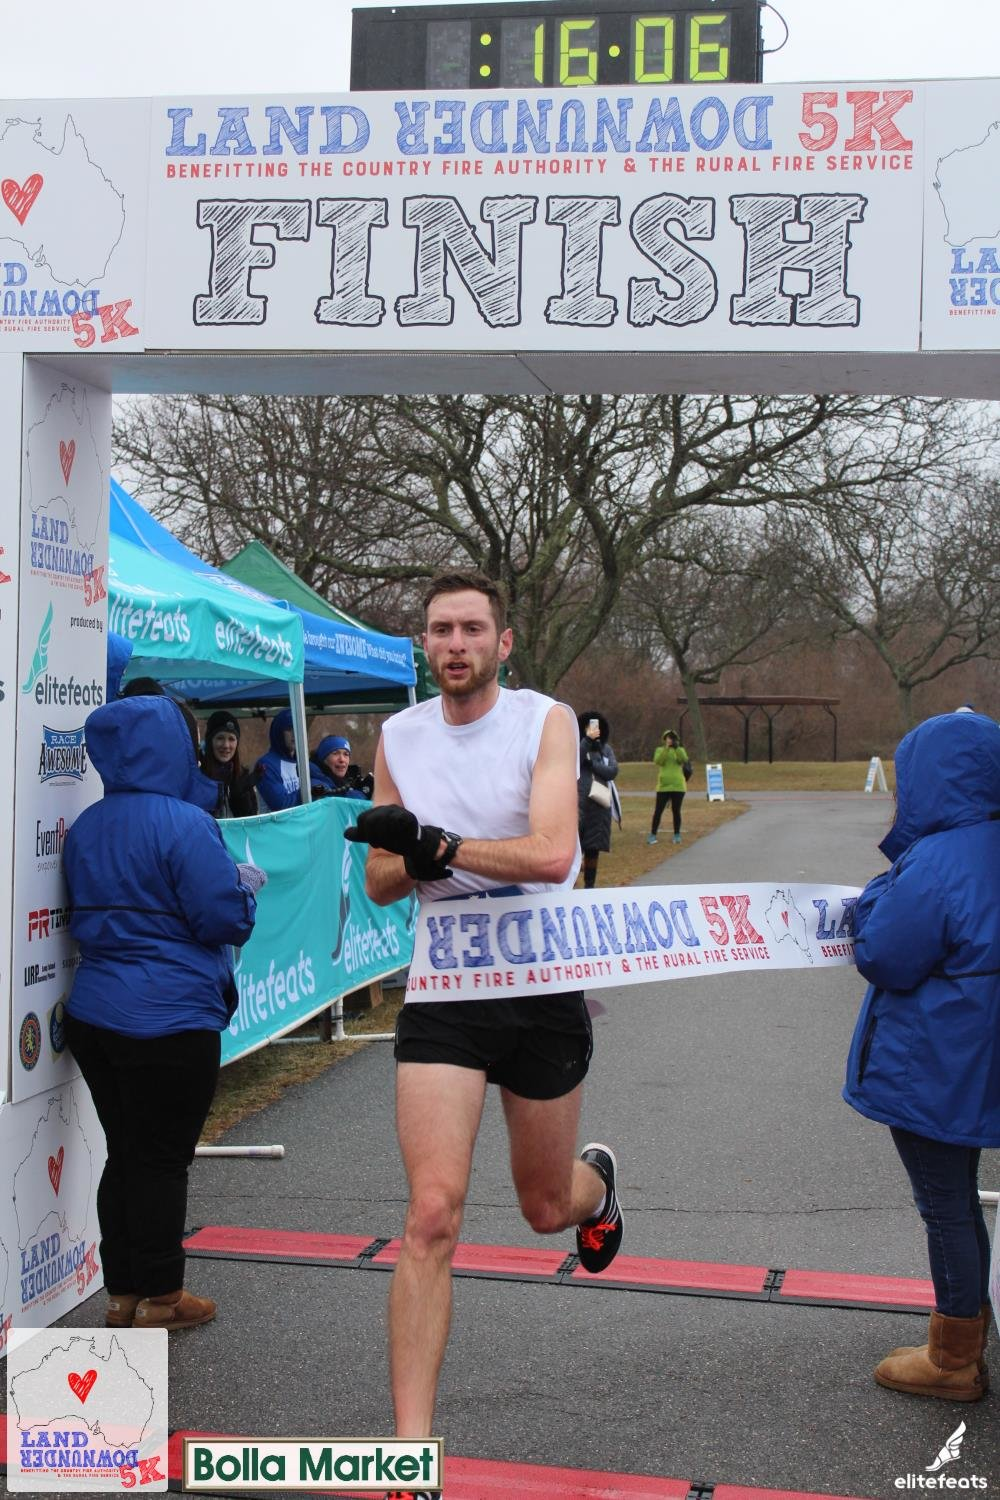 Lynbrook resident Jonathan Schloth, 23, finished first among men in Nassau County's Land Down Under 5K on Jan. 25, which went to support the Australian relief effort after recent bush fires.